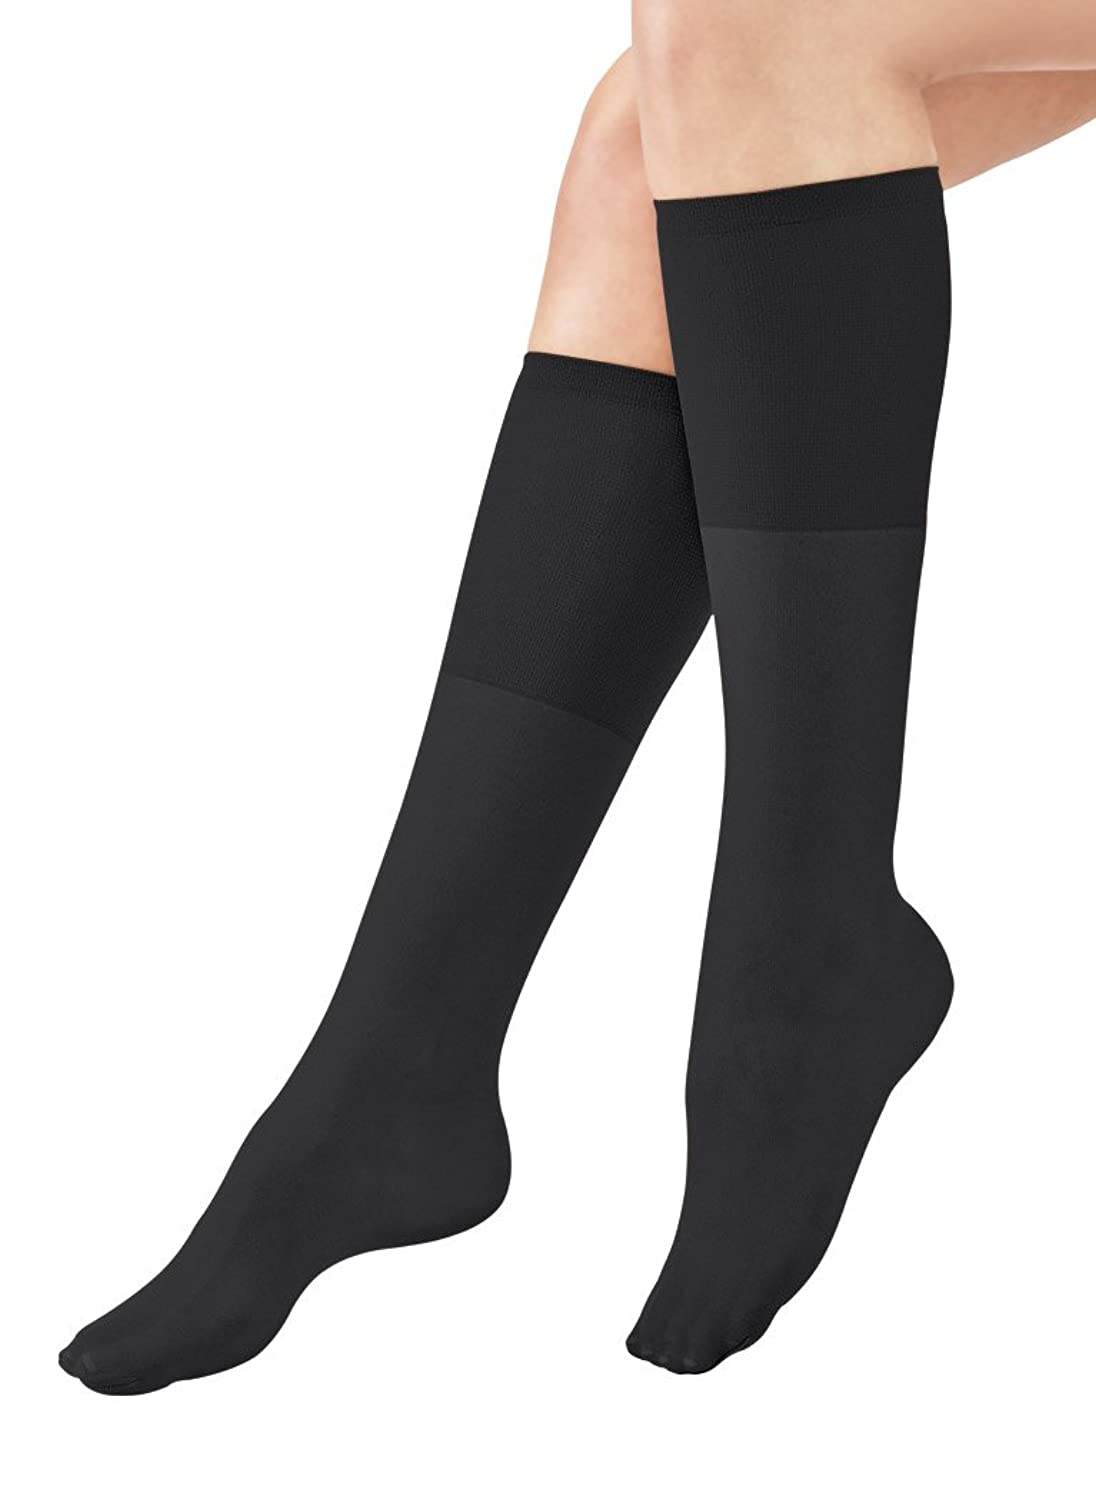 Top AmeriMark Women's Non-Run Support Knee-Highs free shipping